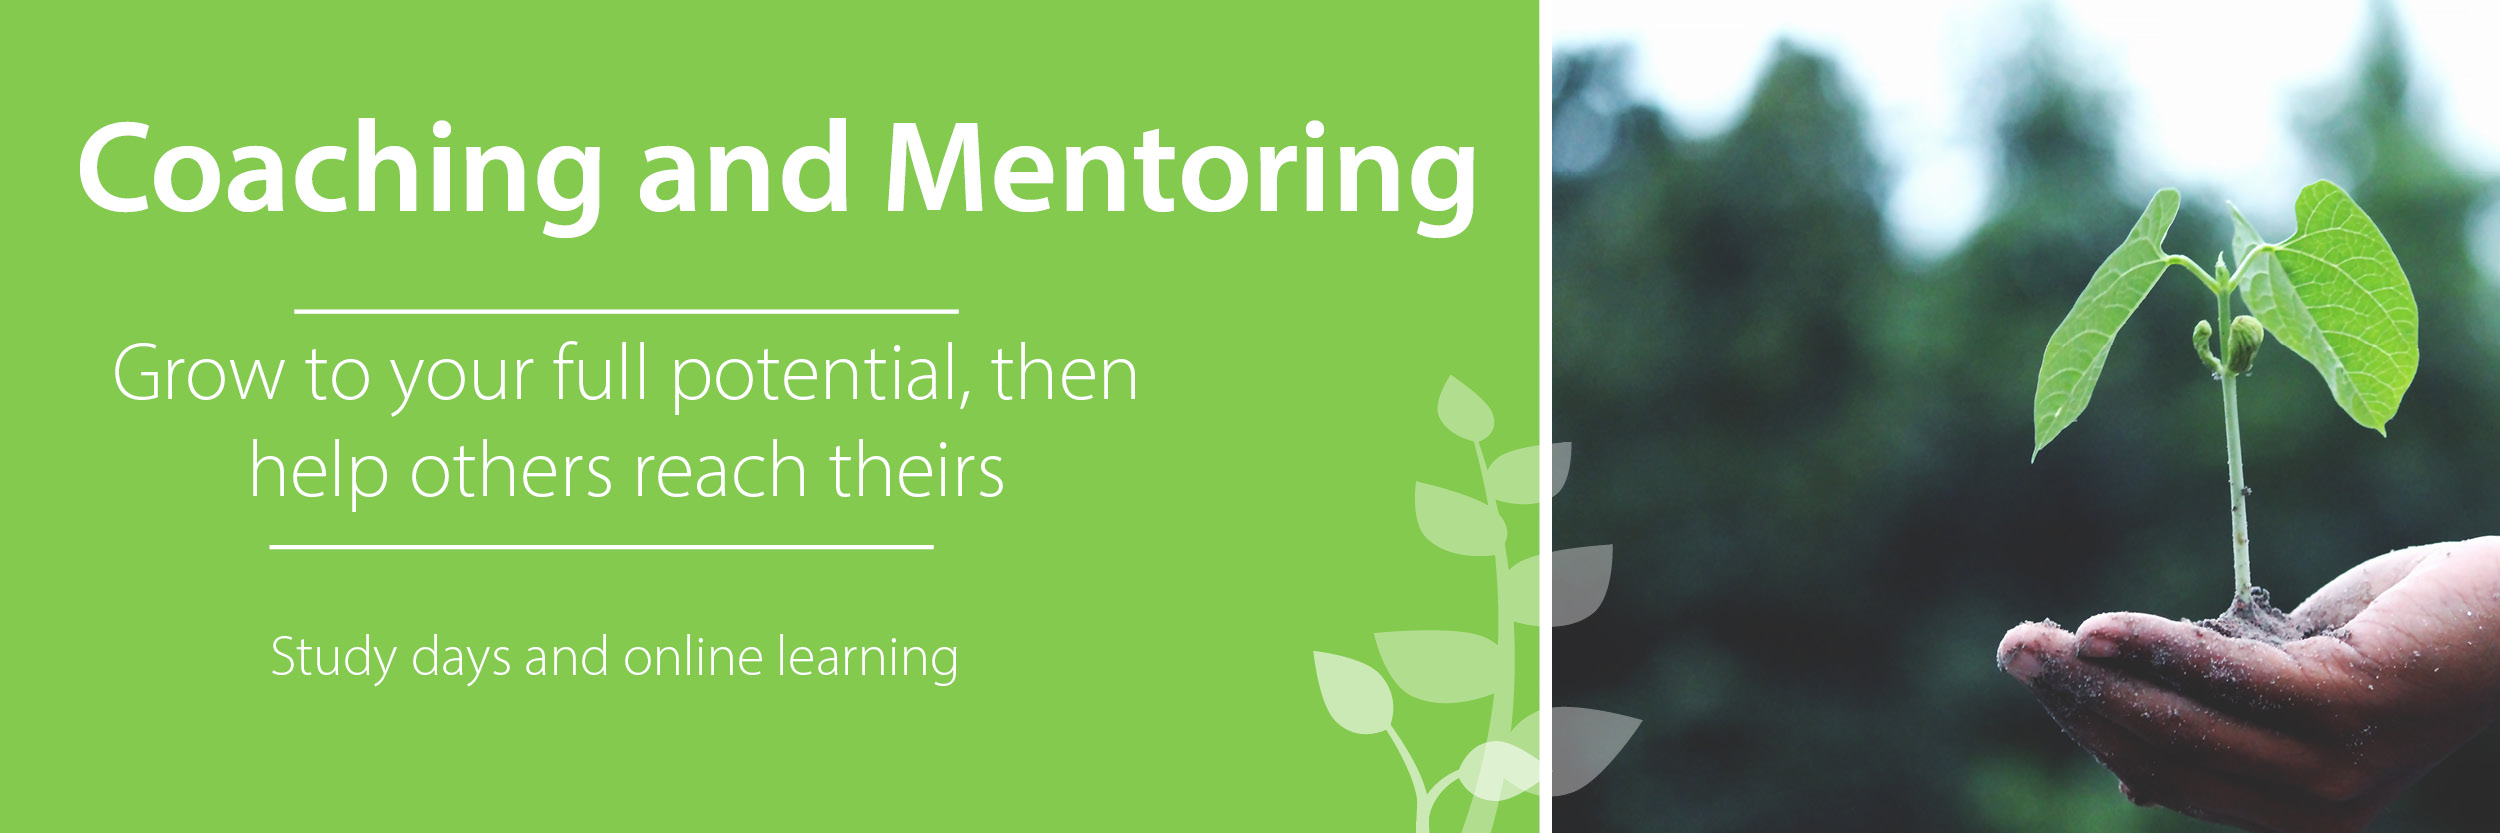 Gain practical skills to help coach and mentor others